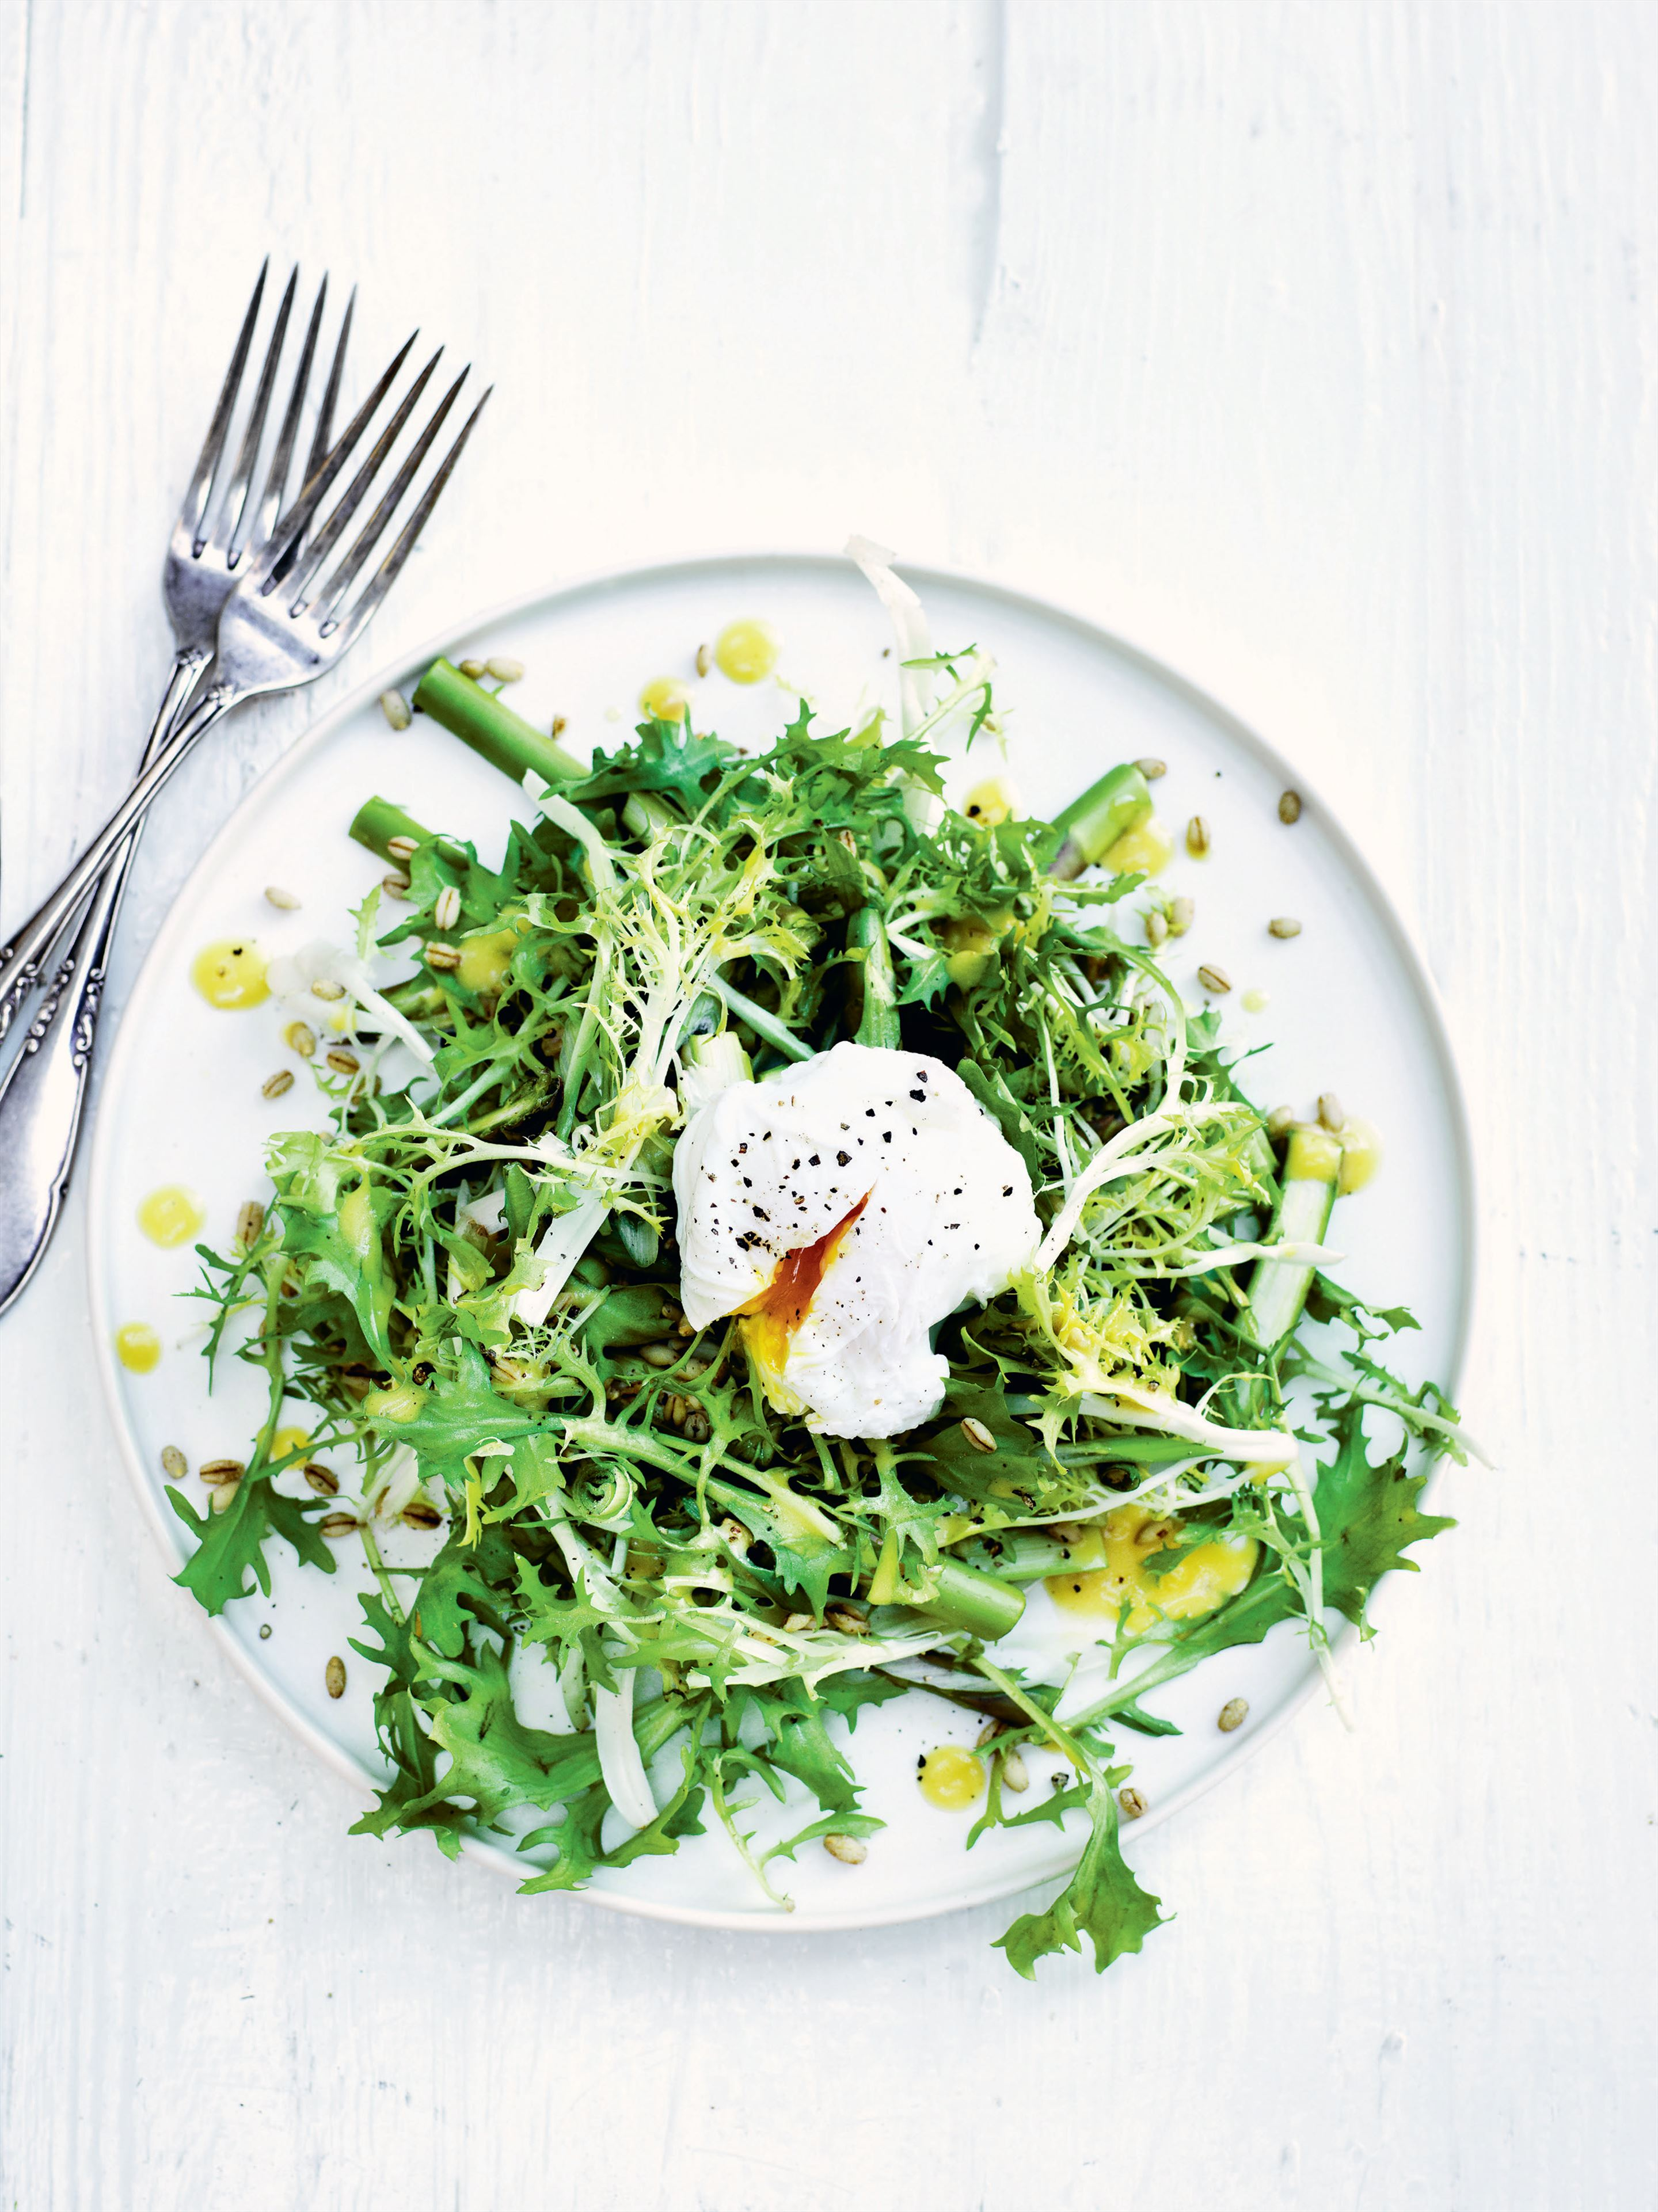 Barley frisée salad with asparagus and spring onions